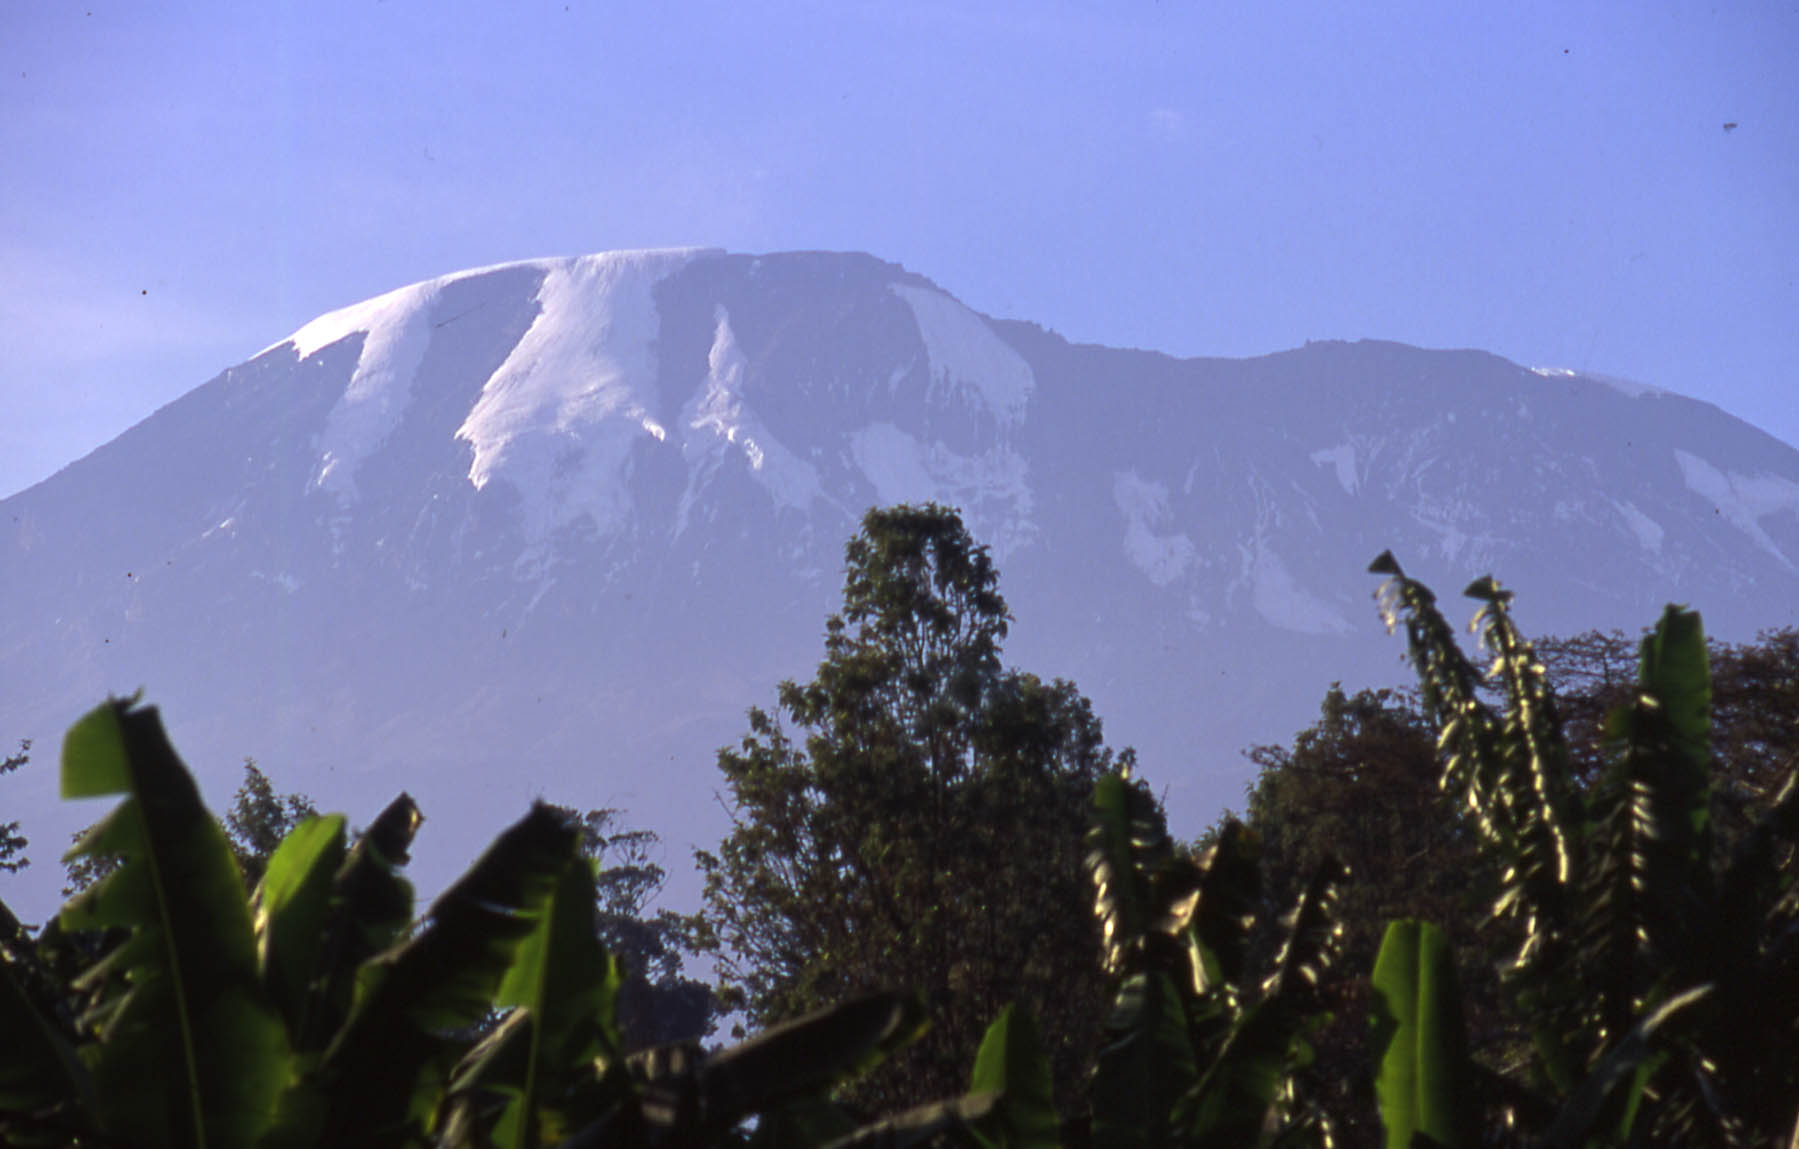 Kili as Earth Mother - her flanks support rain and cloud forest to 9,500ft - © Arabella Cecil